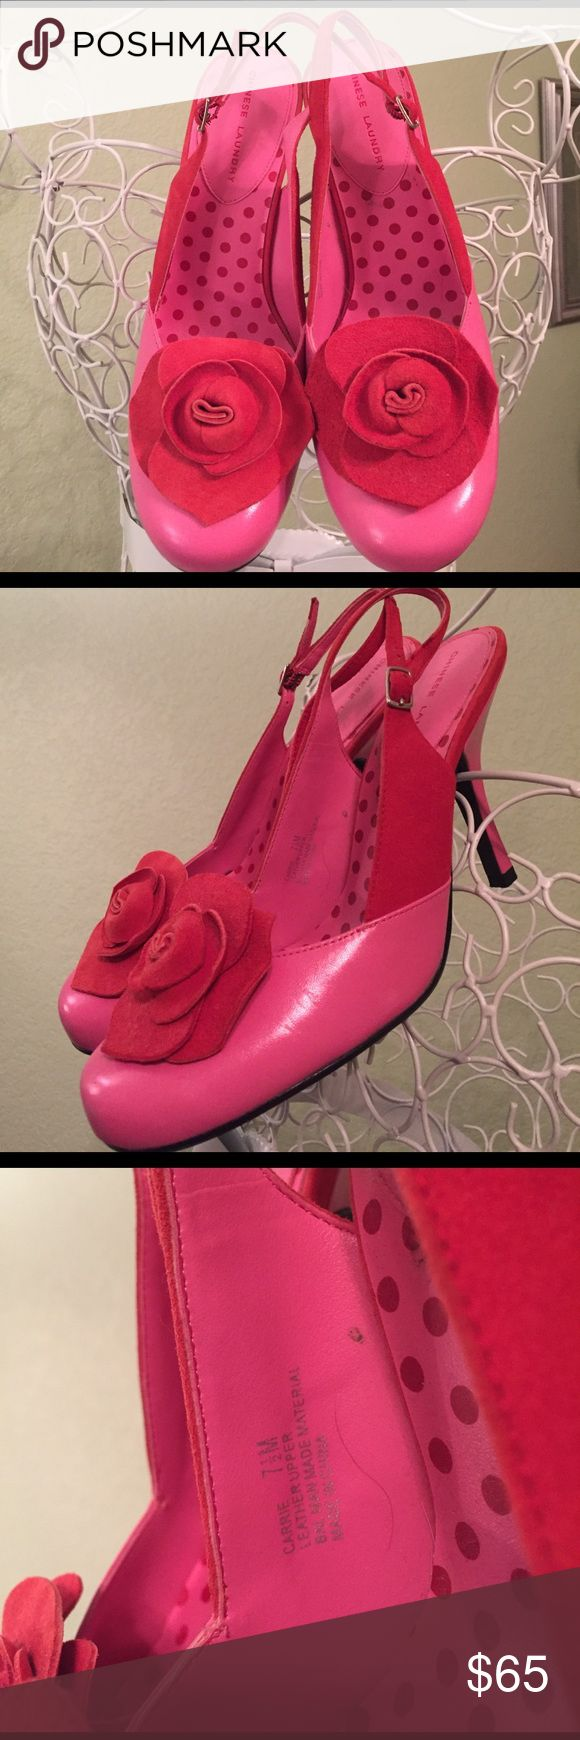 ROSE Sling Pumps - MUST HAVE Supercute slingpumps, size 7,5, red & pink, leather upper, worn ince, no major flaws (see spot on heel in first pic) , only being in closet, please ask if you need more infos/pics before buying to avoid problems!😀 Chinese Laundry Shoes Heels